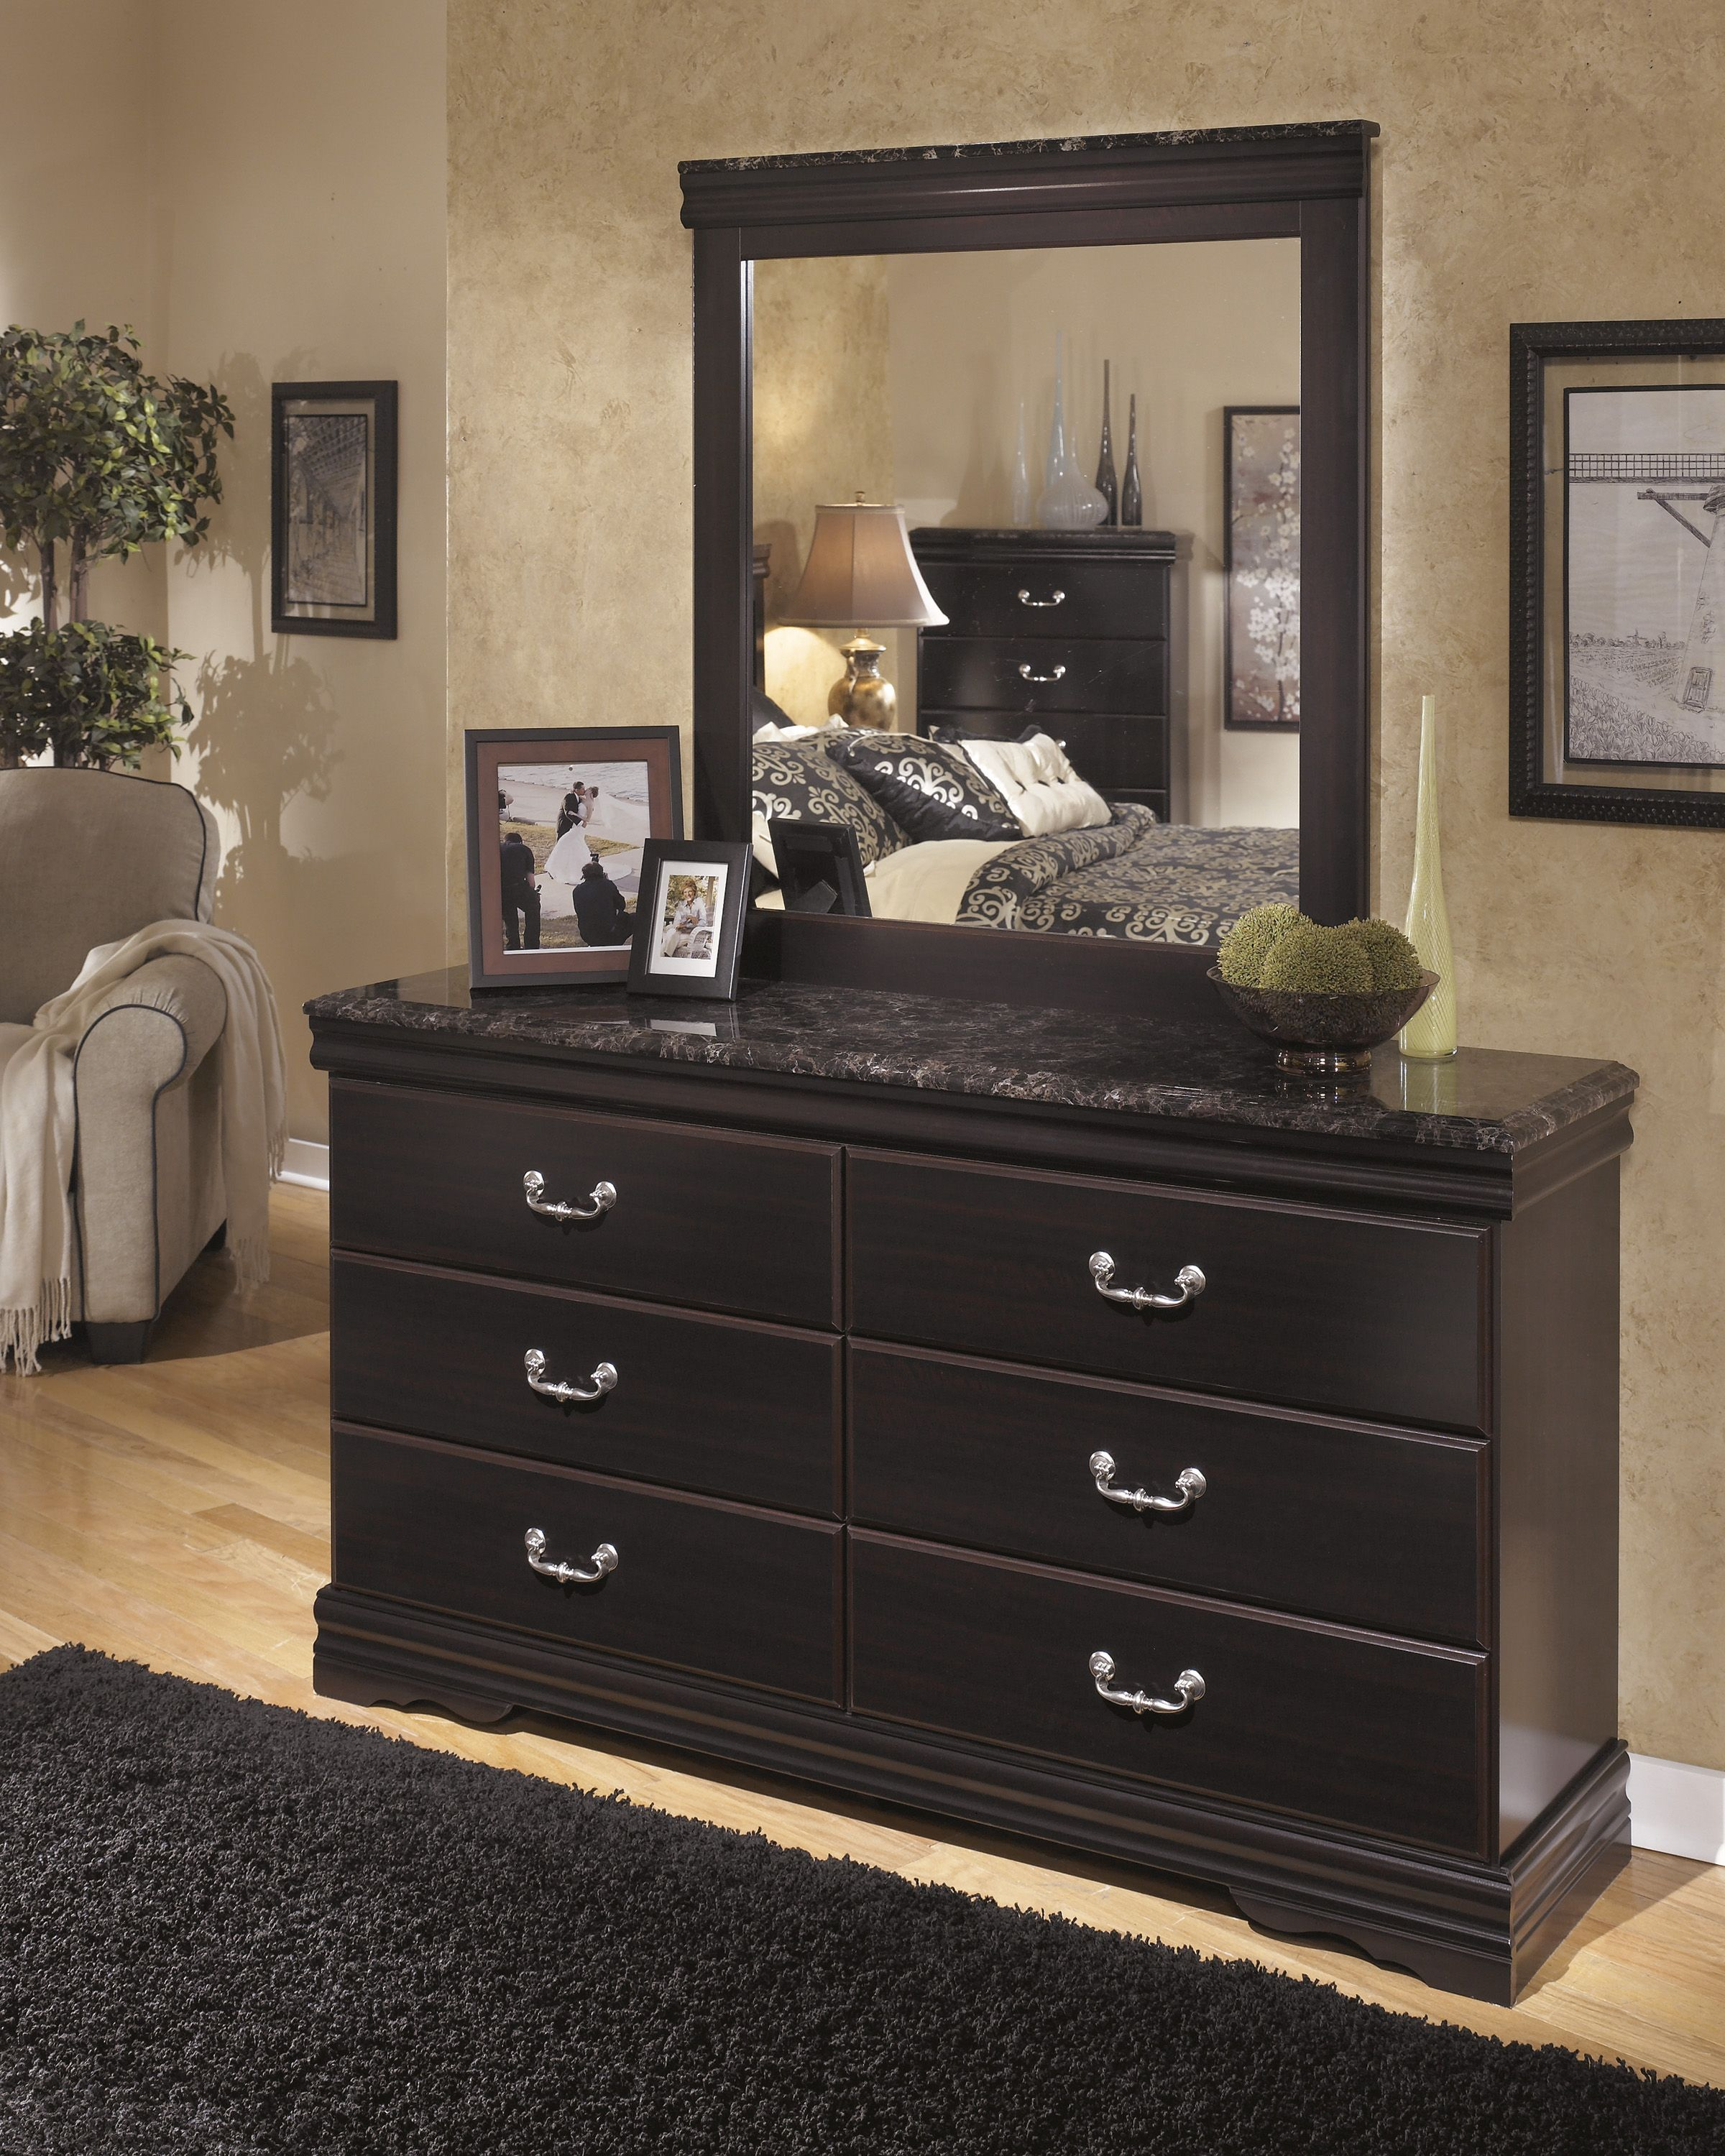 The \'Esmeralda\' dresser/mirror has 6 working drawers | The ...